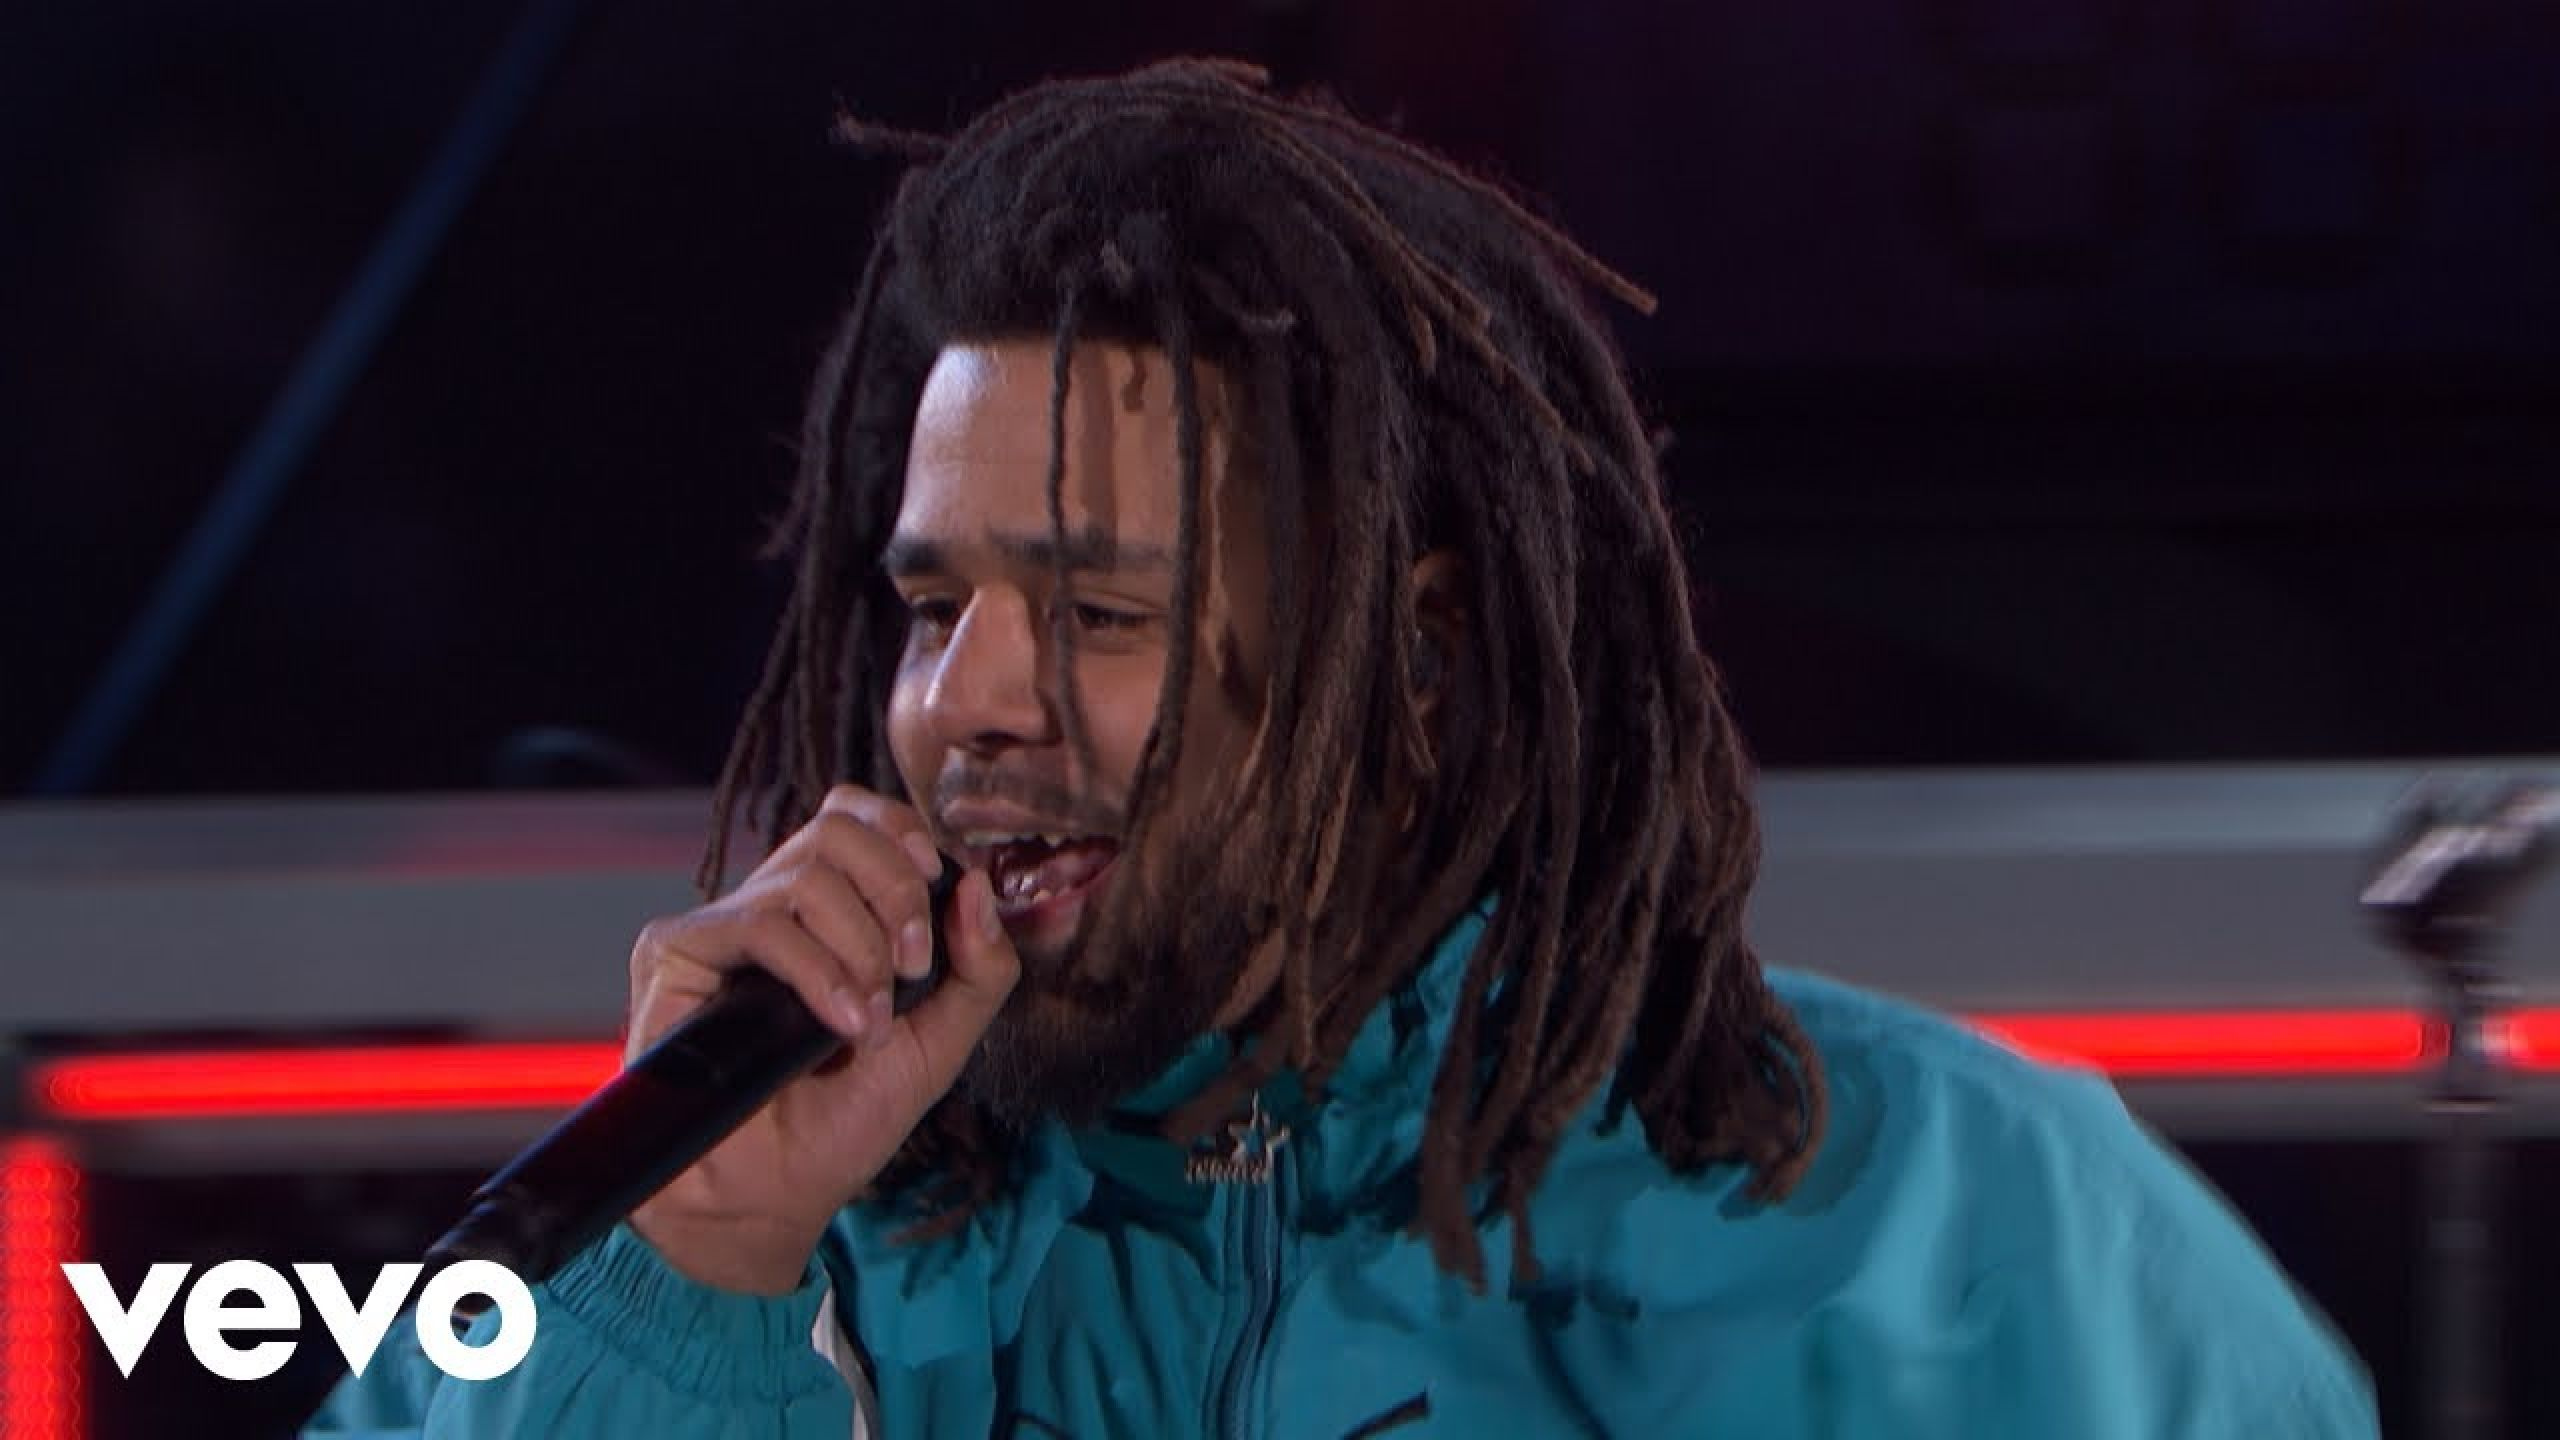 Nba All Star Halftime Show 2020.J Cole Middle Child 2019 Nba All Star Halftime